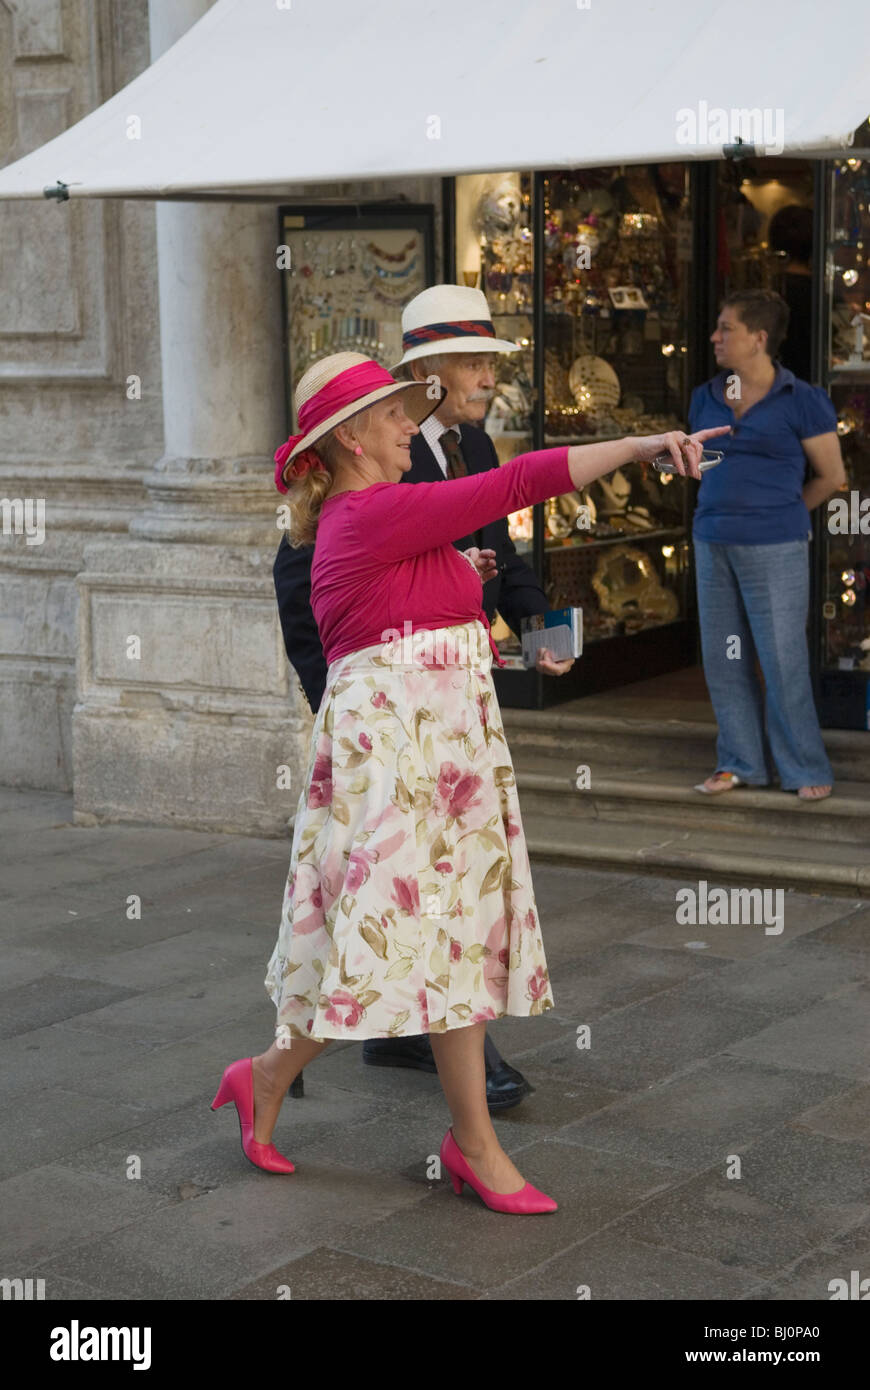 Venice Italy  British senior couple on romantic reliving their younger days holiday St Marks Square. - Stock Image